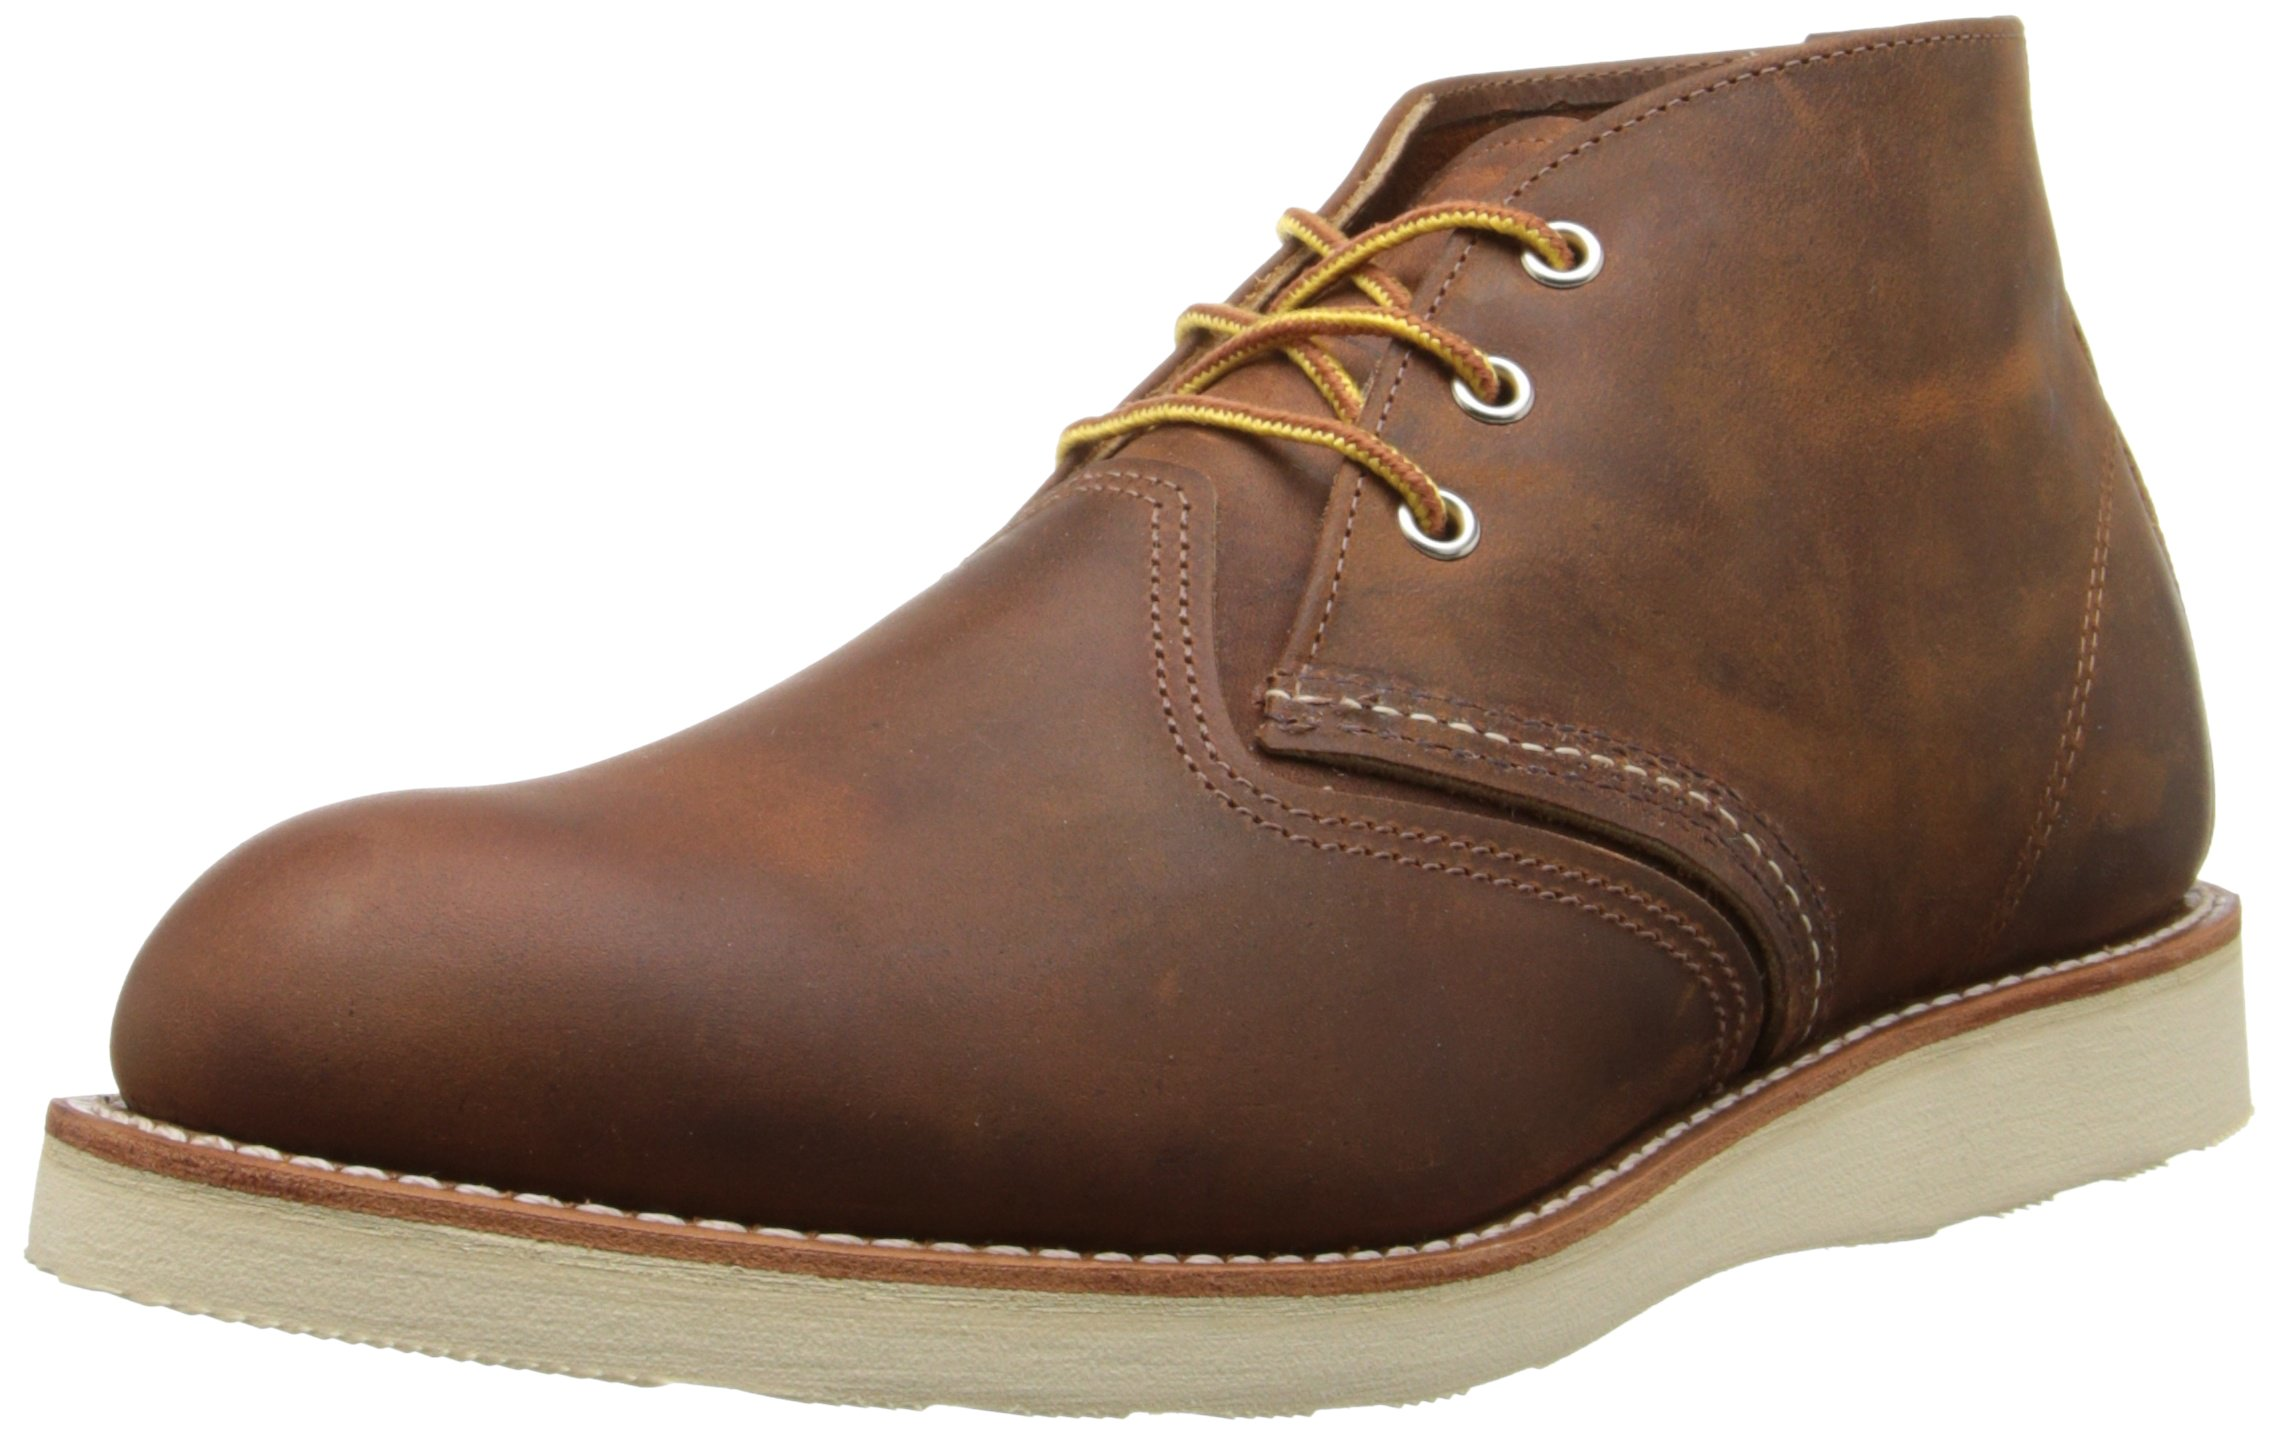 Red Wing Men's Heritage Work Chukka Boot, Copper Rough And Tough, 9.5 D(M) US